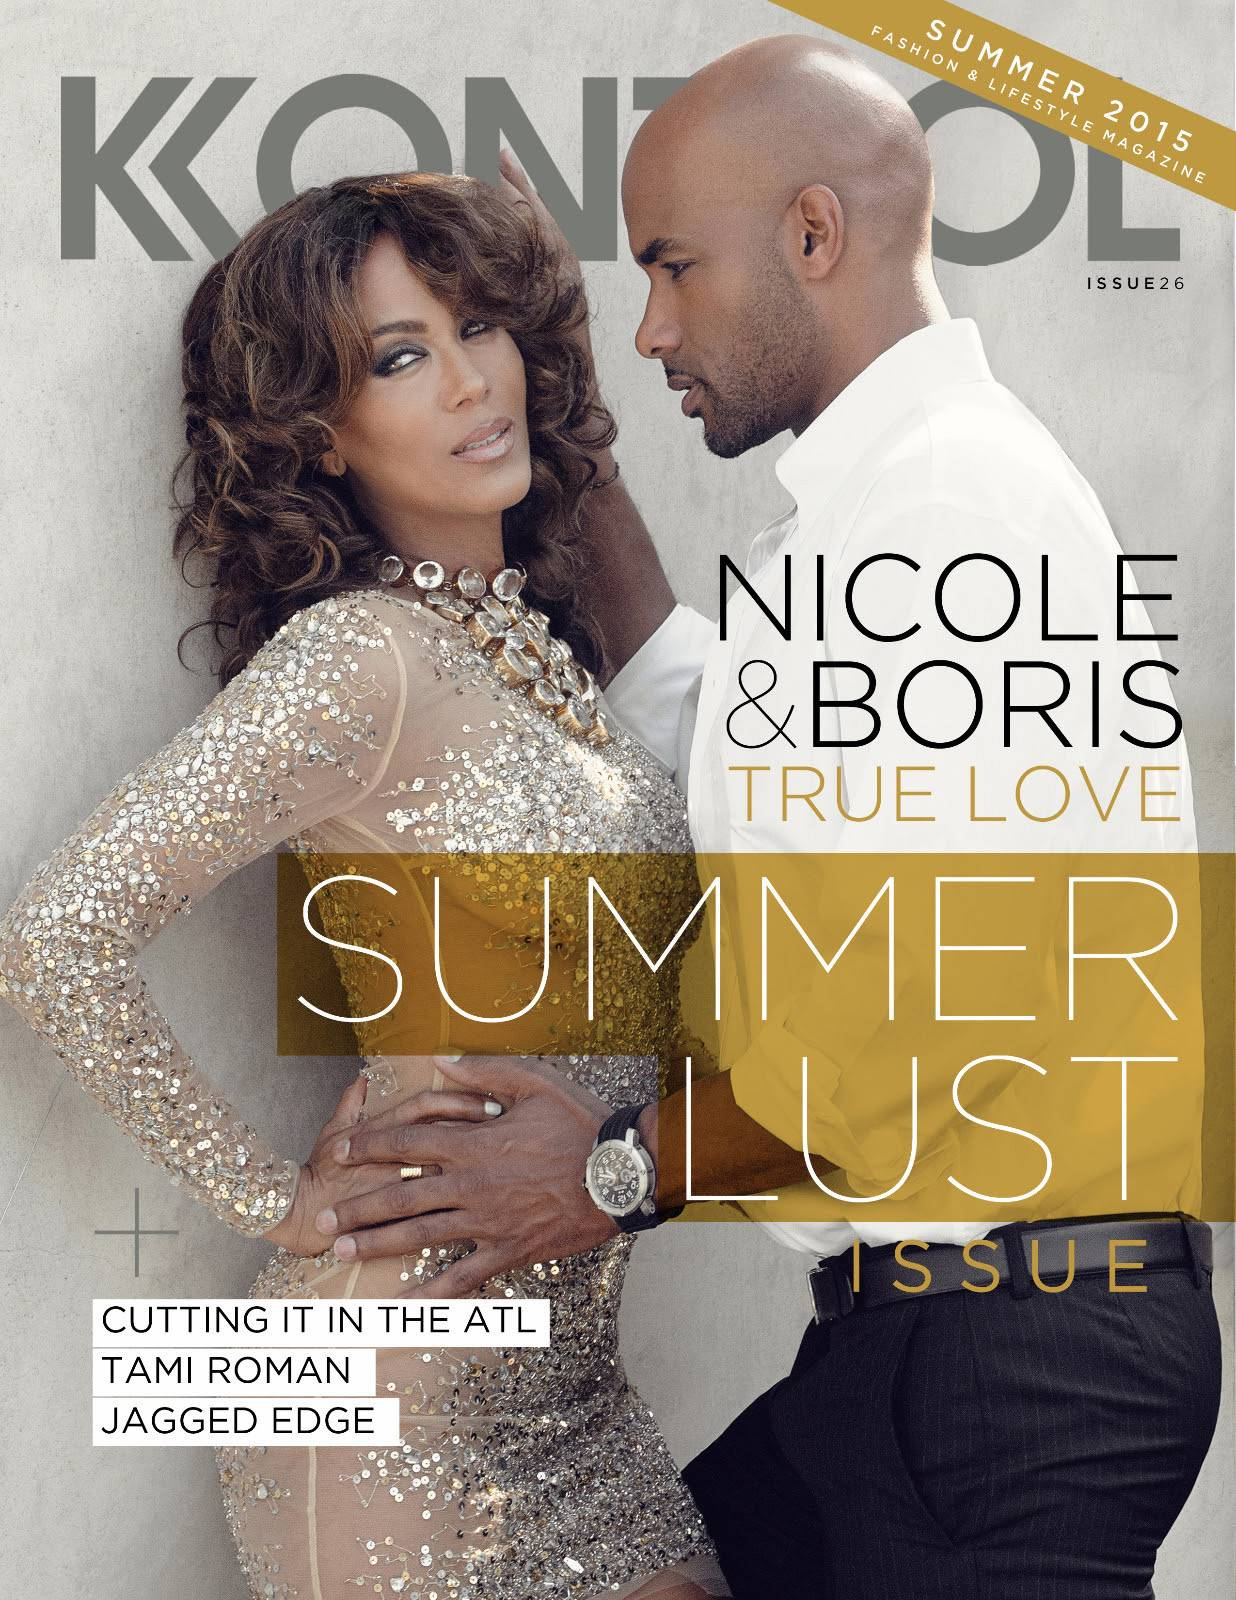 Boris and Nicole: Never Ending Love - Currently, Boris and Nicole are hosting a daytime talk show. They also appeared on the cover of Kontrol letting the world know who the realest husband and wife are in Hollywood.   (Photo: Kontrol Magazine, Summer 2015 issue)